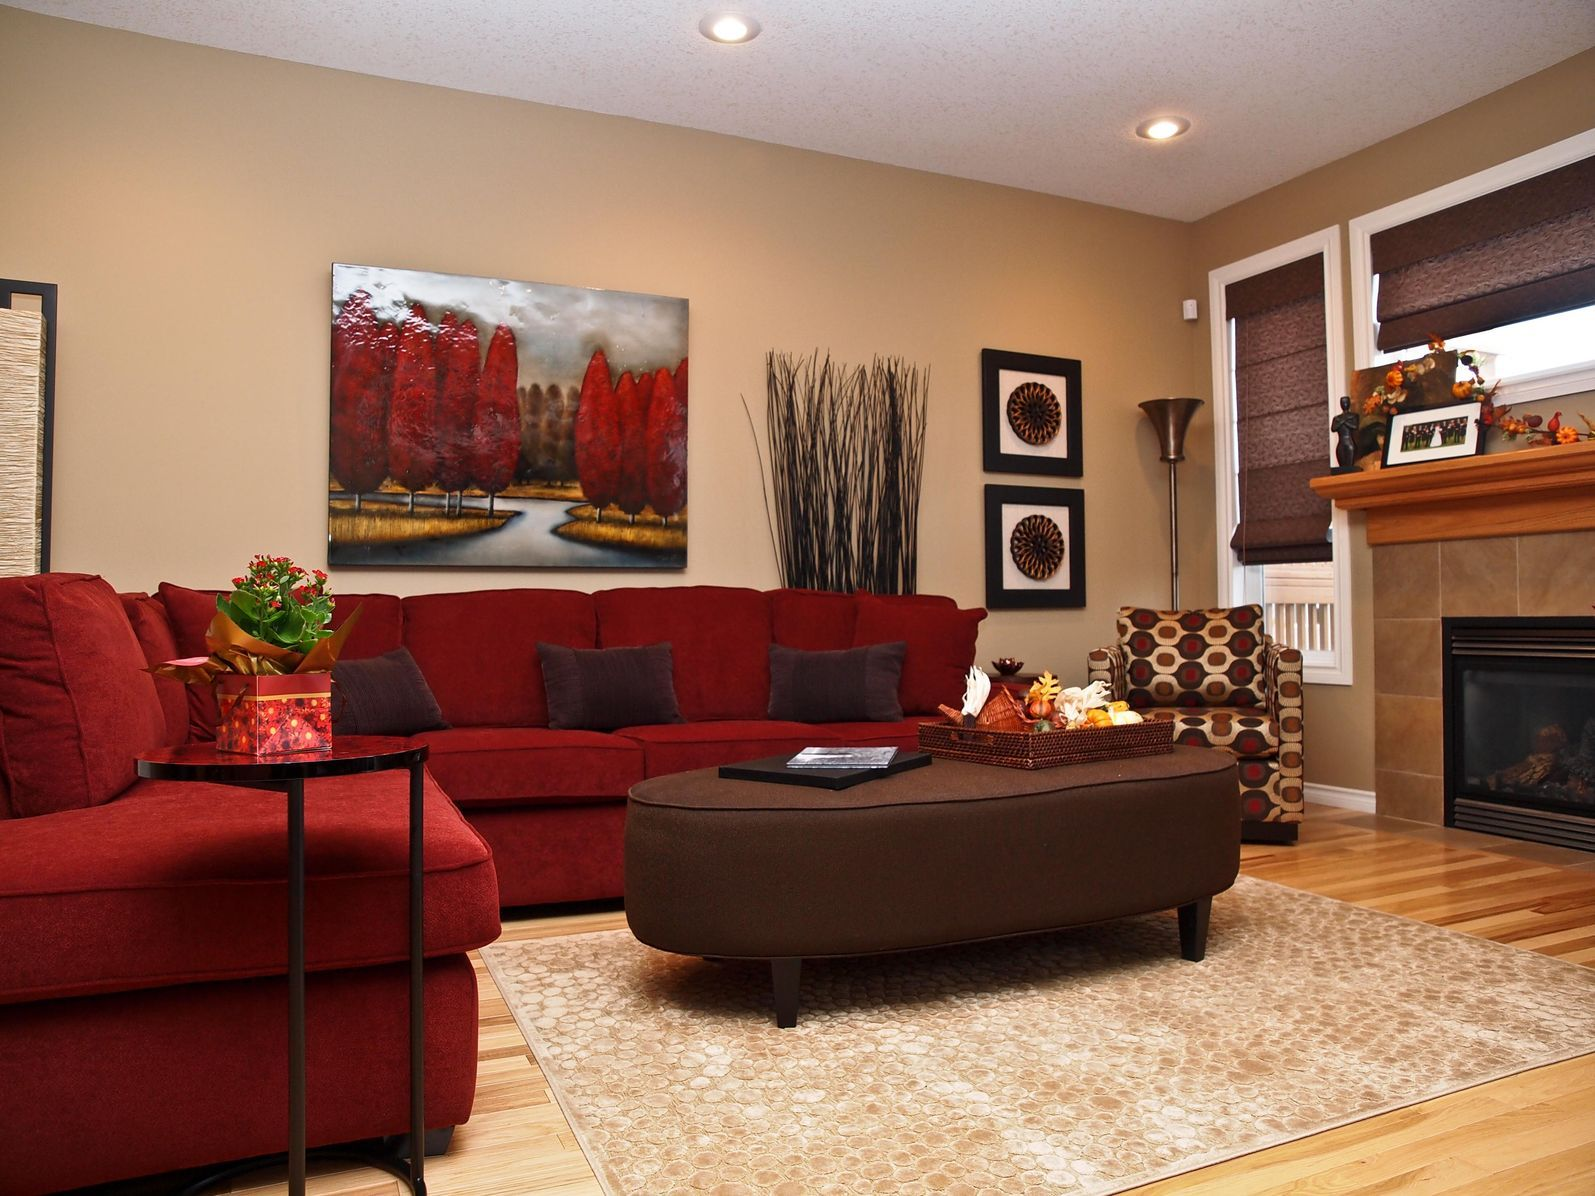 Permalink to Inspiration To Get Living Room Red Sofa Ideas Image